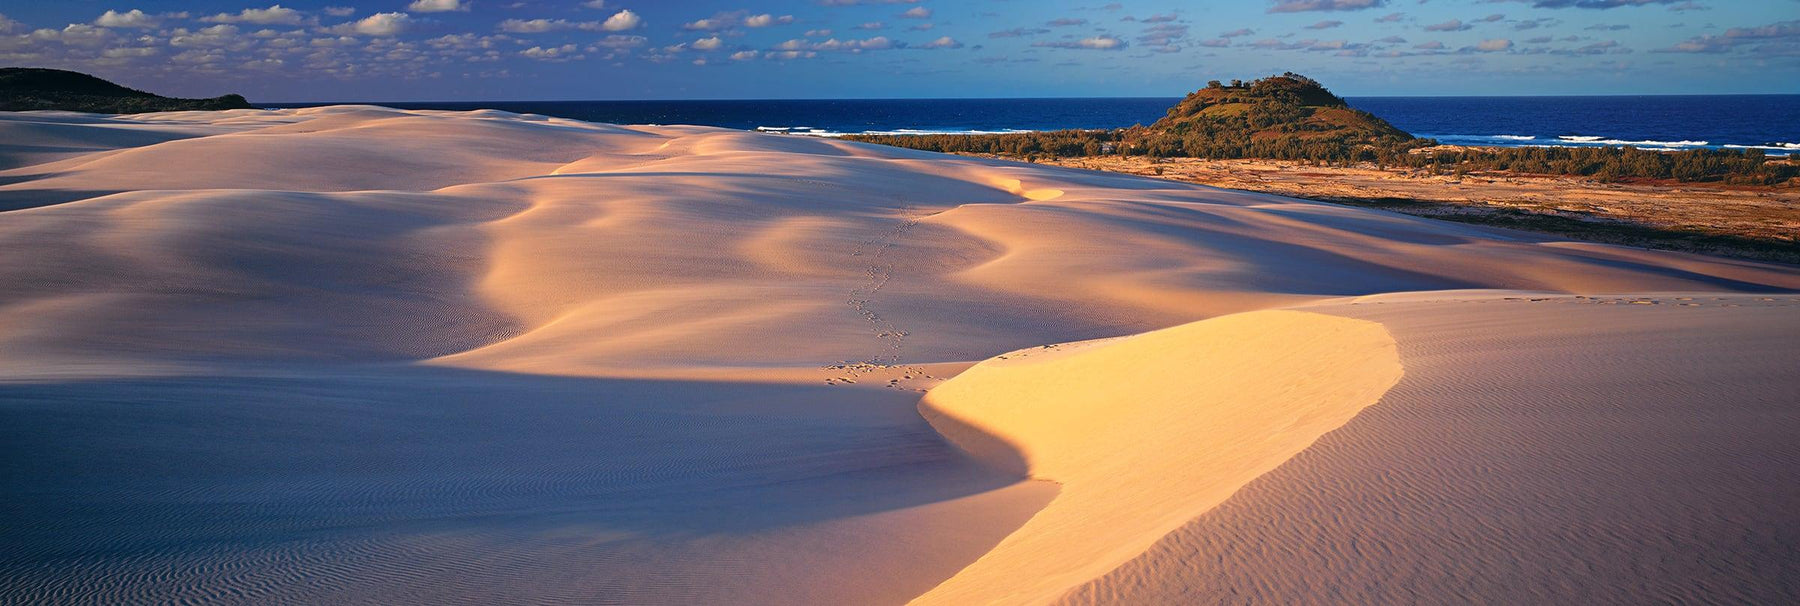 Windswept sand dunes covered with shadows along the coast of Fraser Island Australia